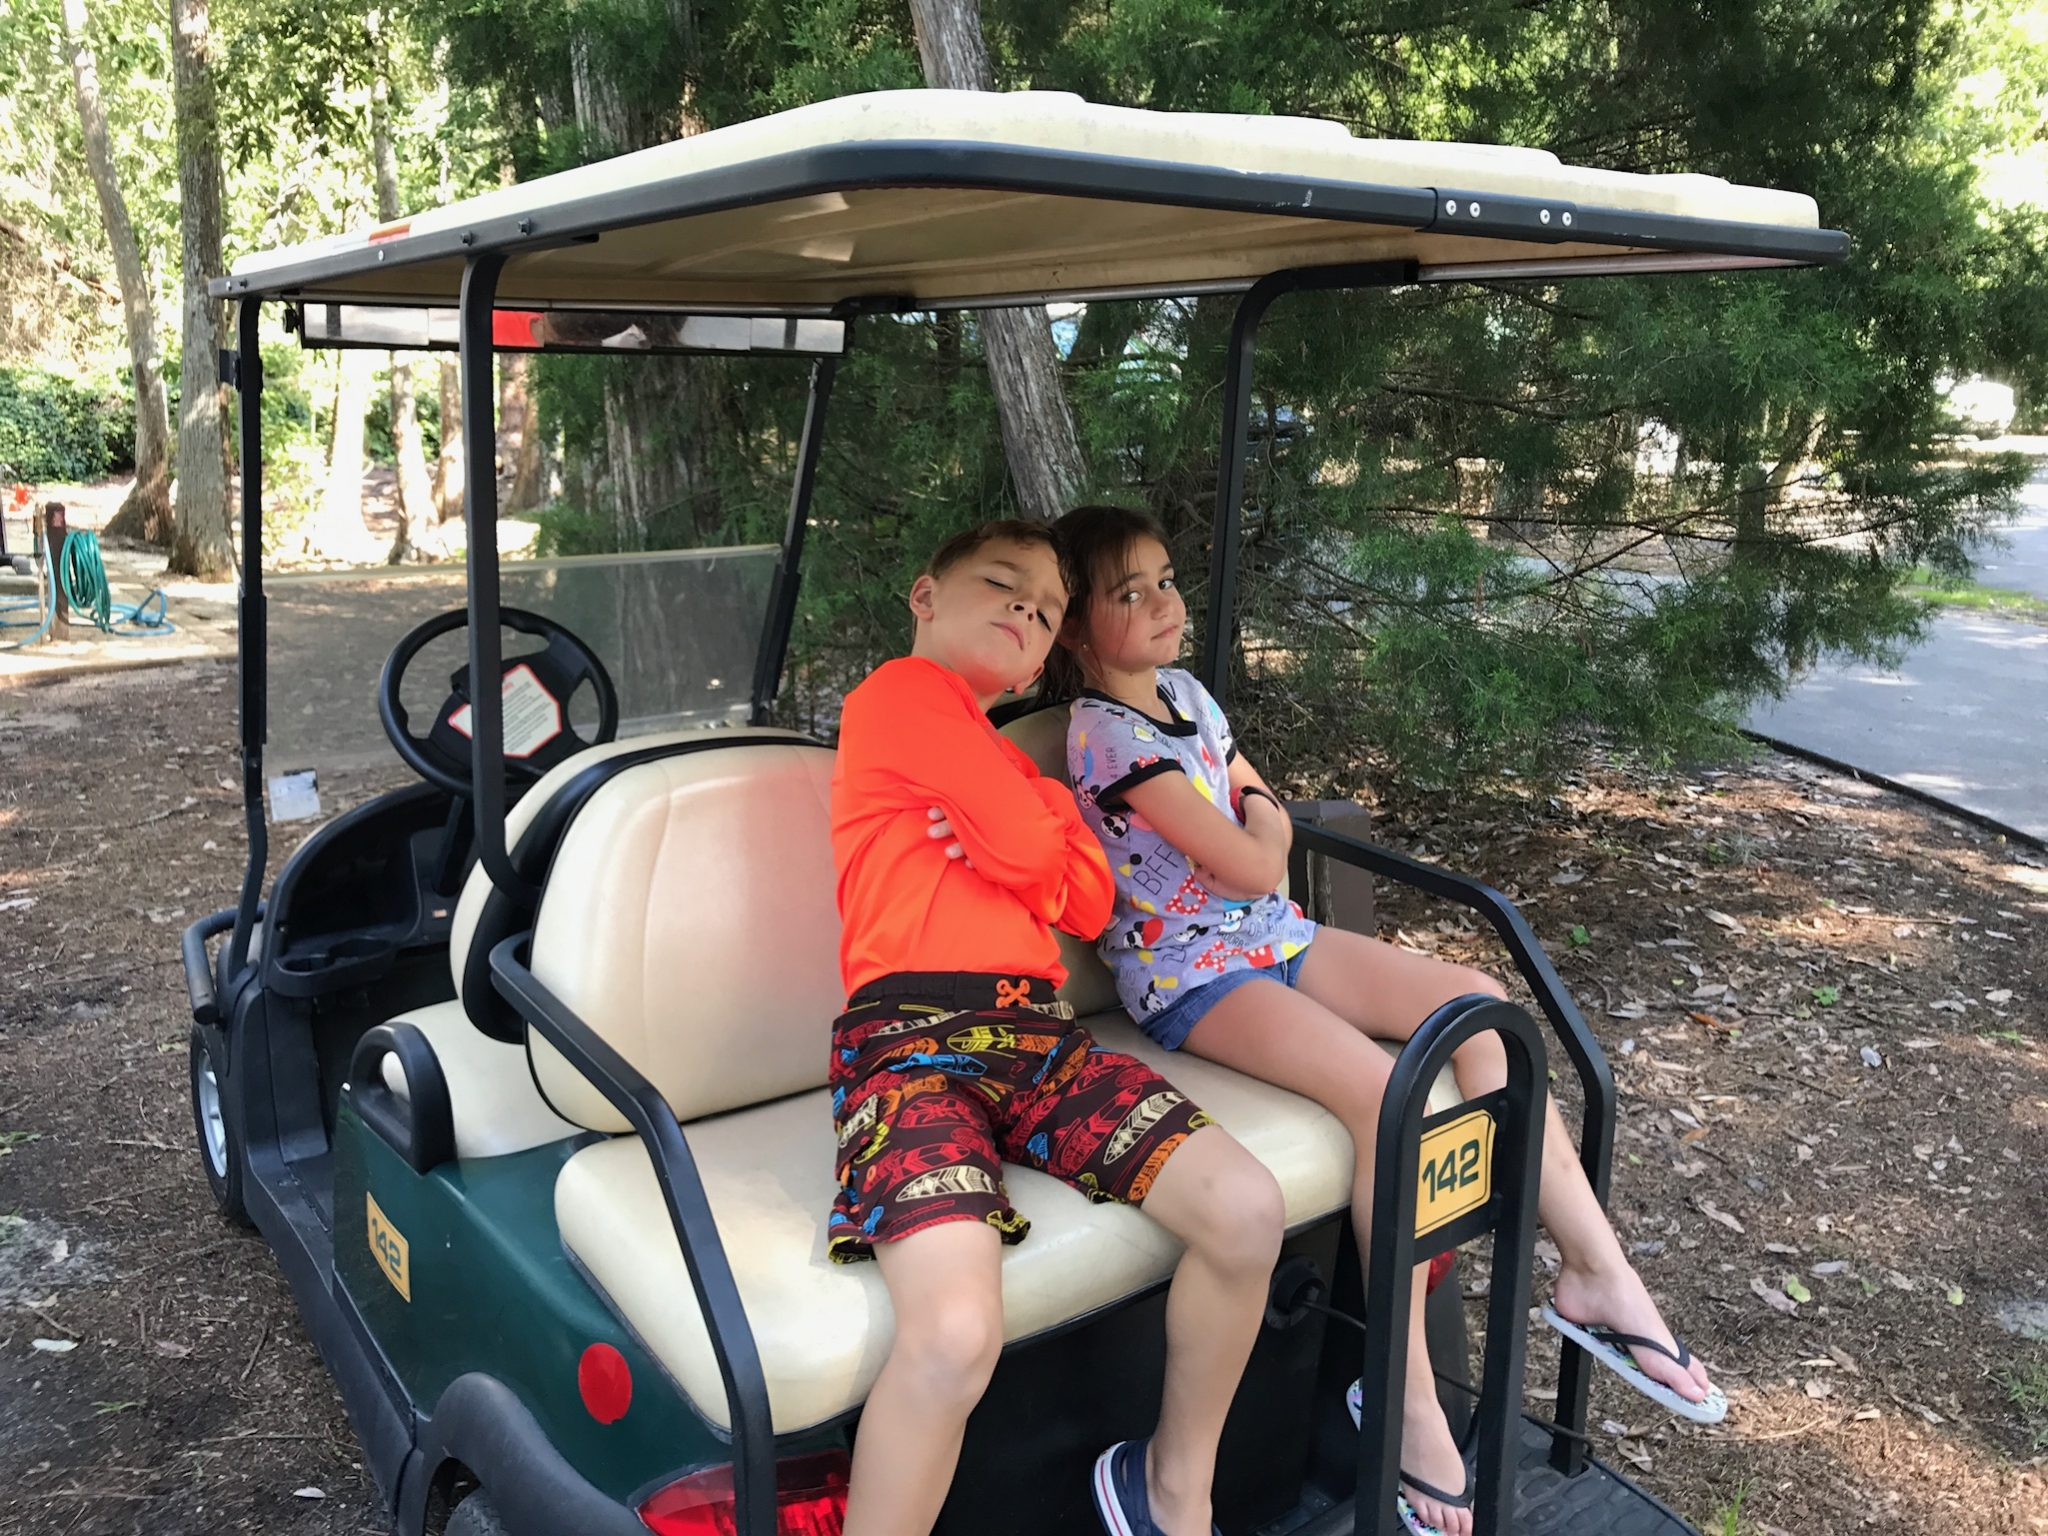 Disney moderate resorts golf cart